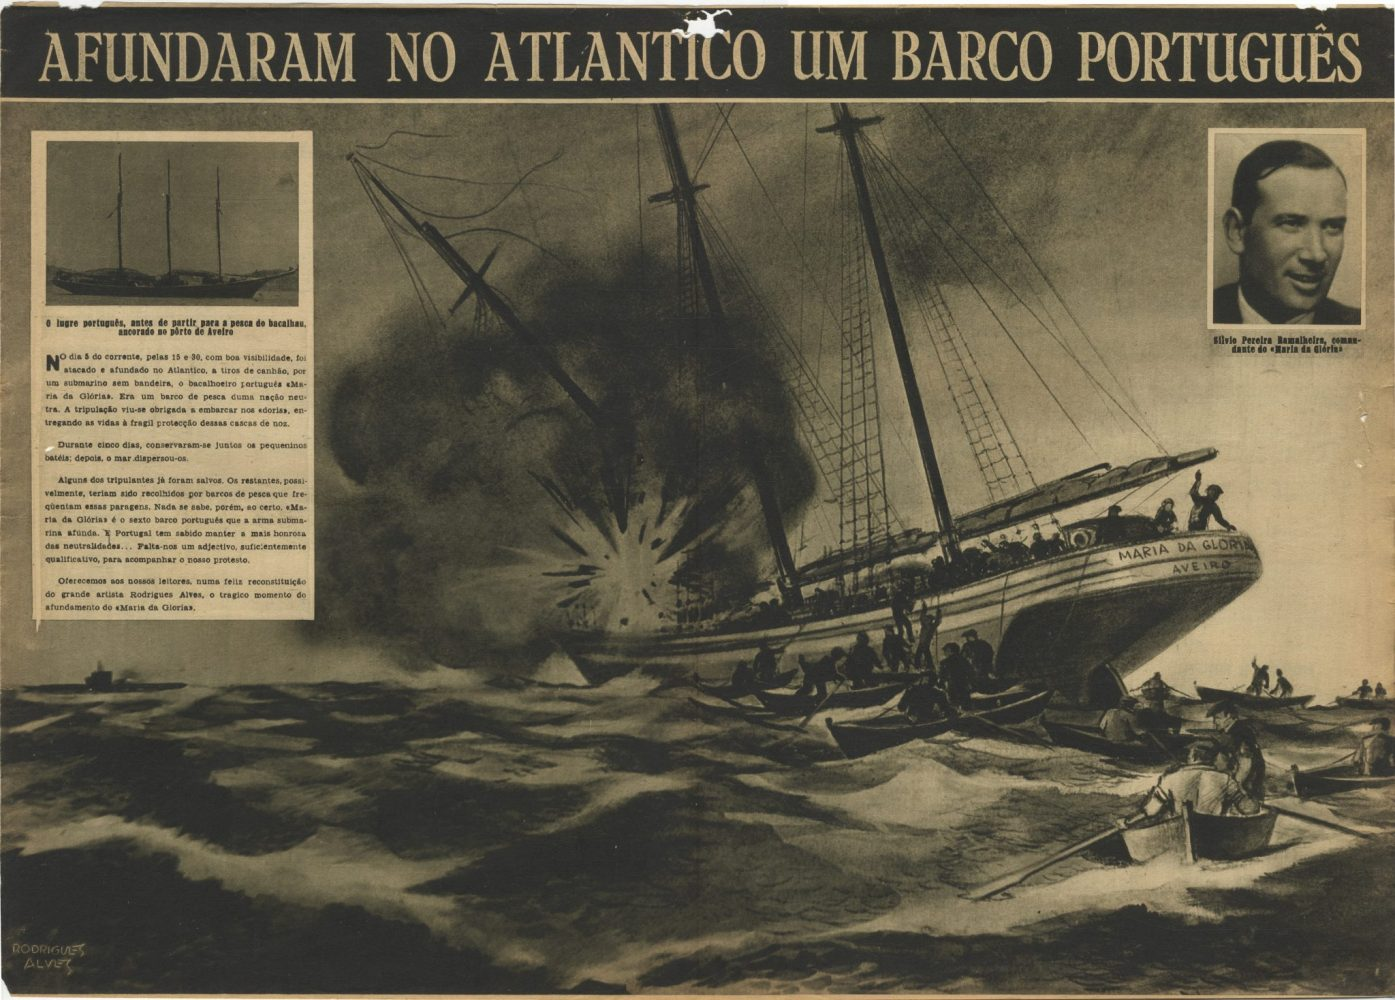 The sinking of Maria do Gloria